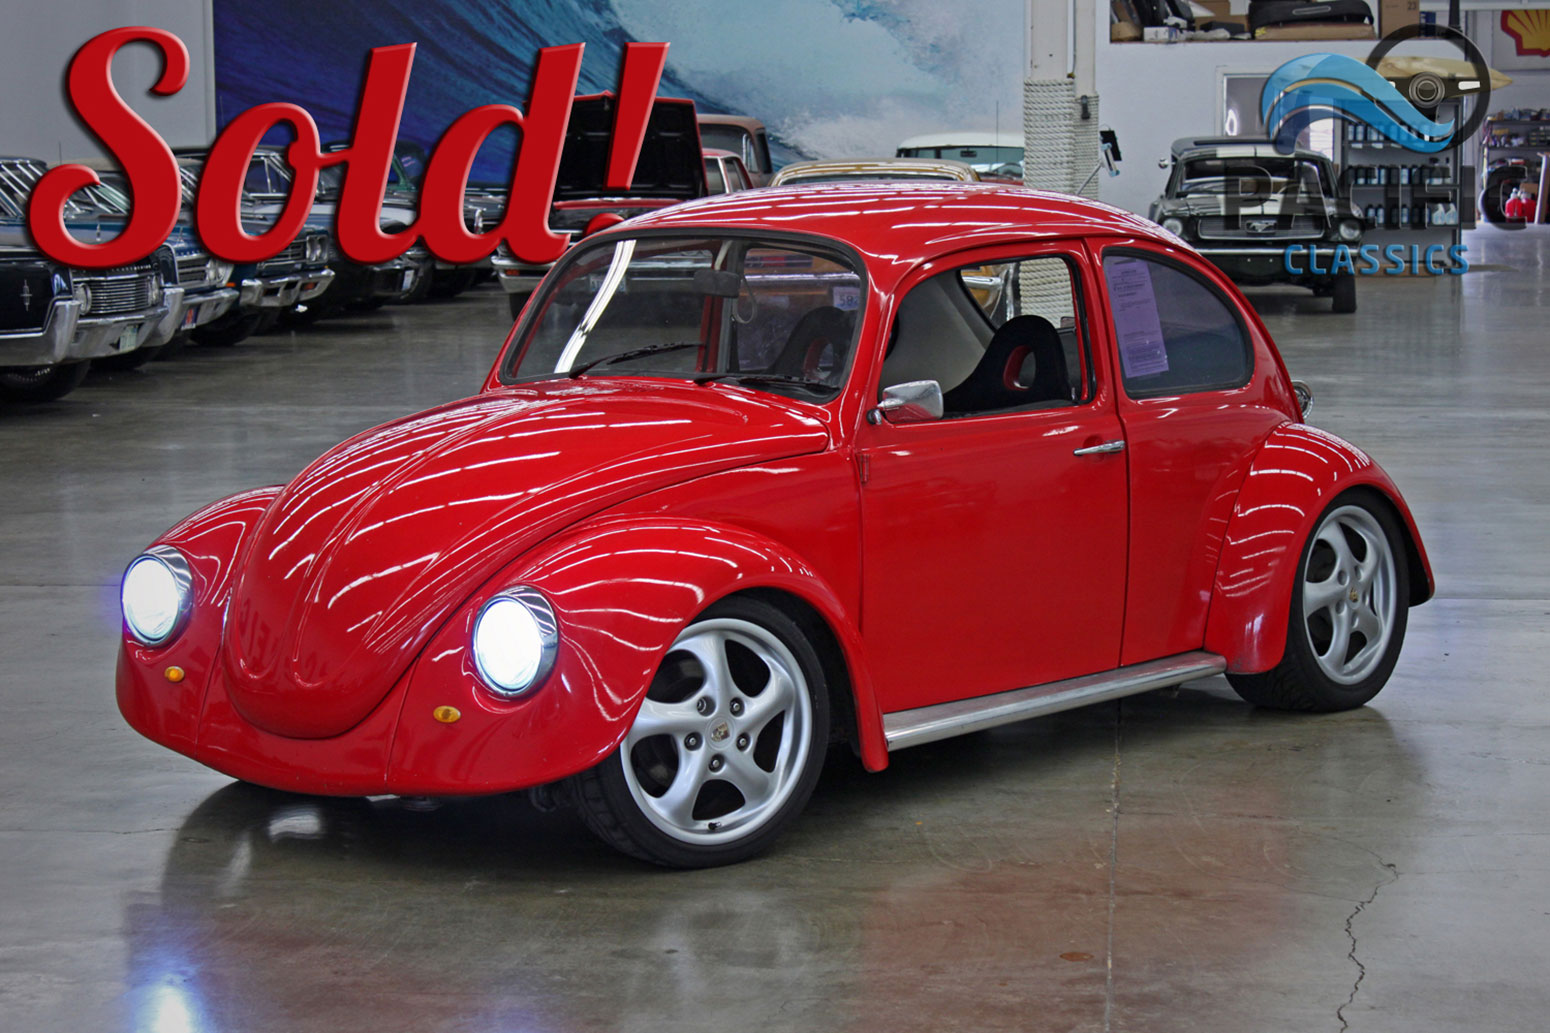 1968 Volkswagen Beetle Turbo Red